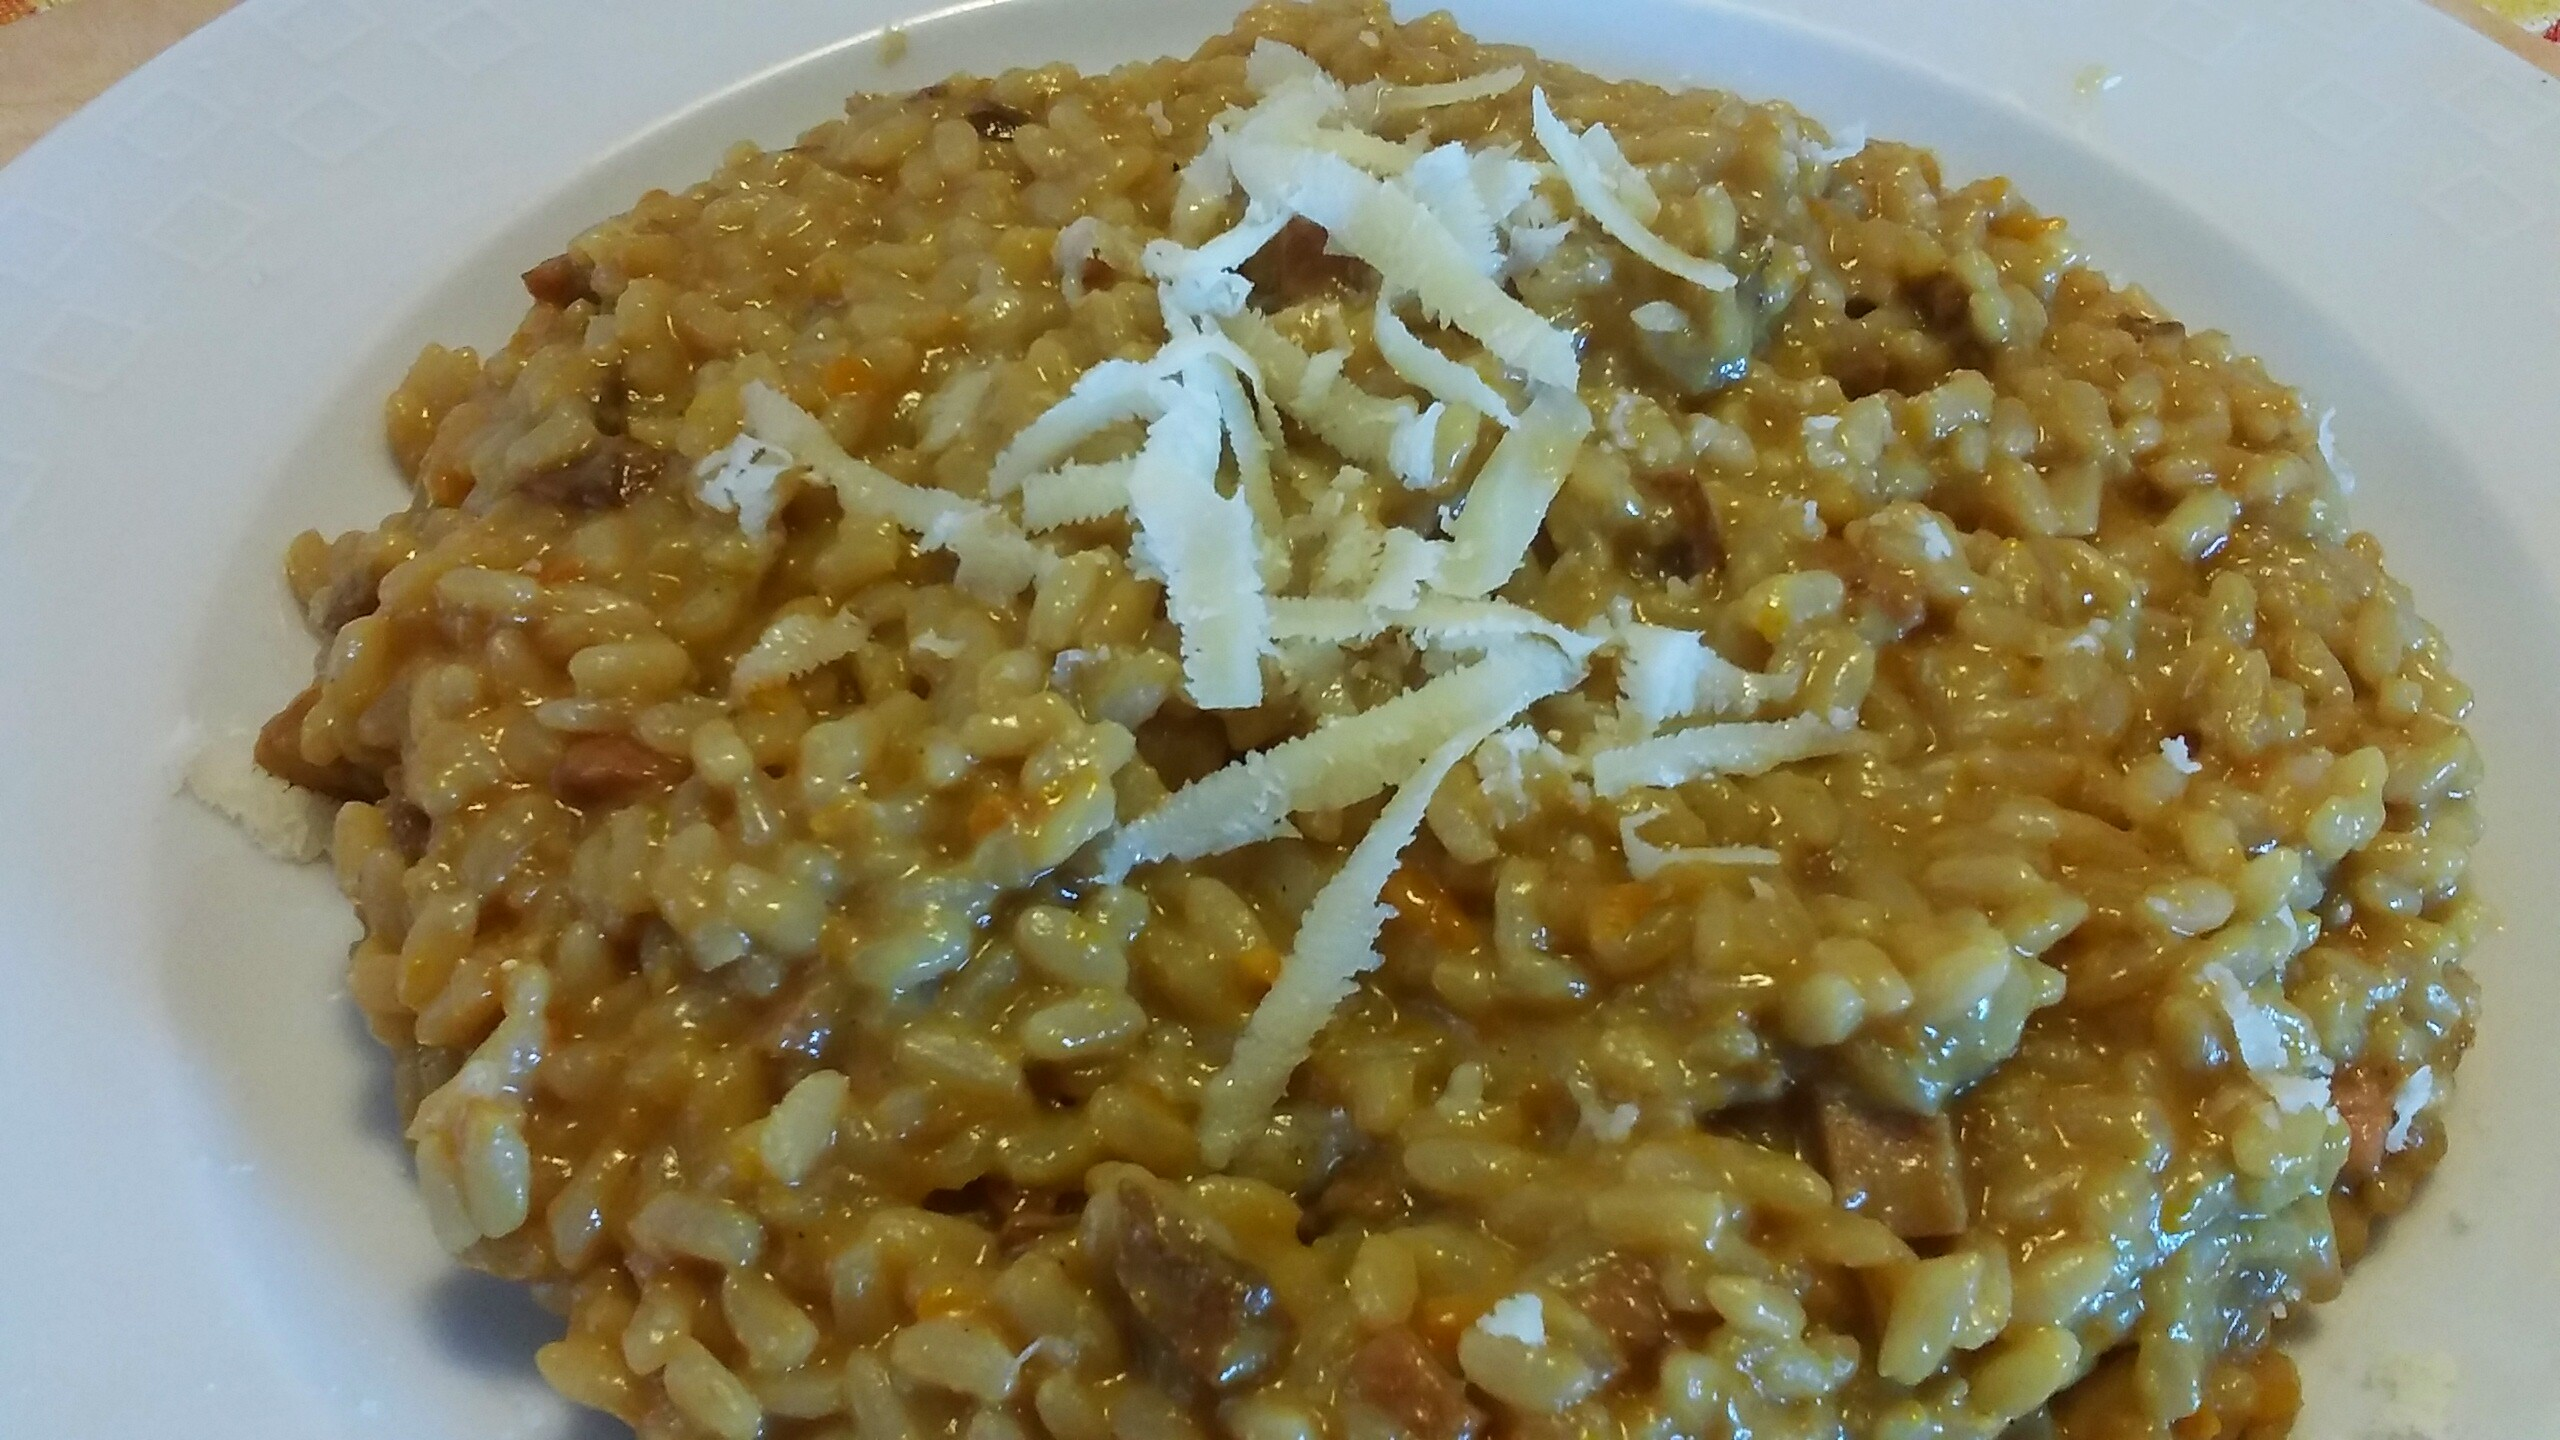 risotto integrale cotto e pocini